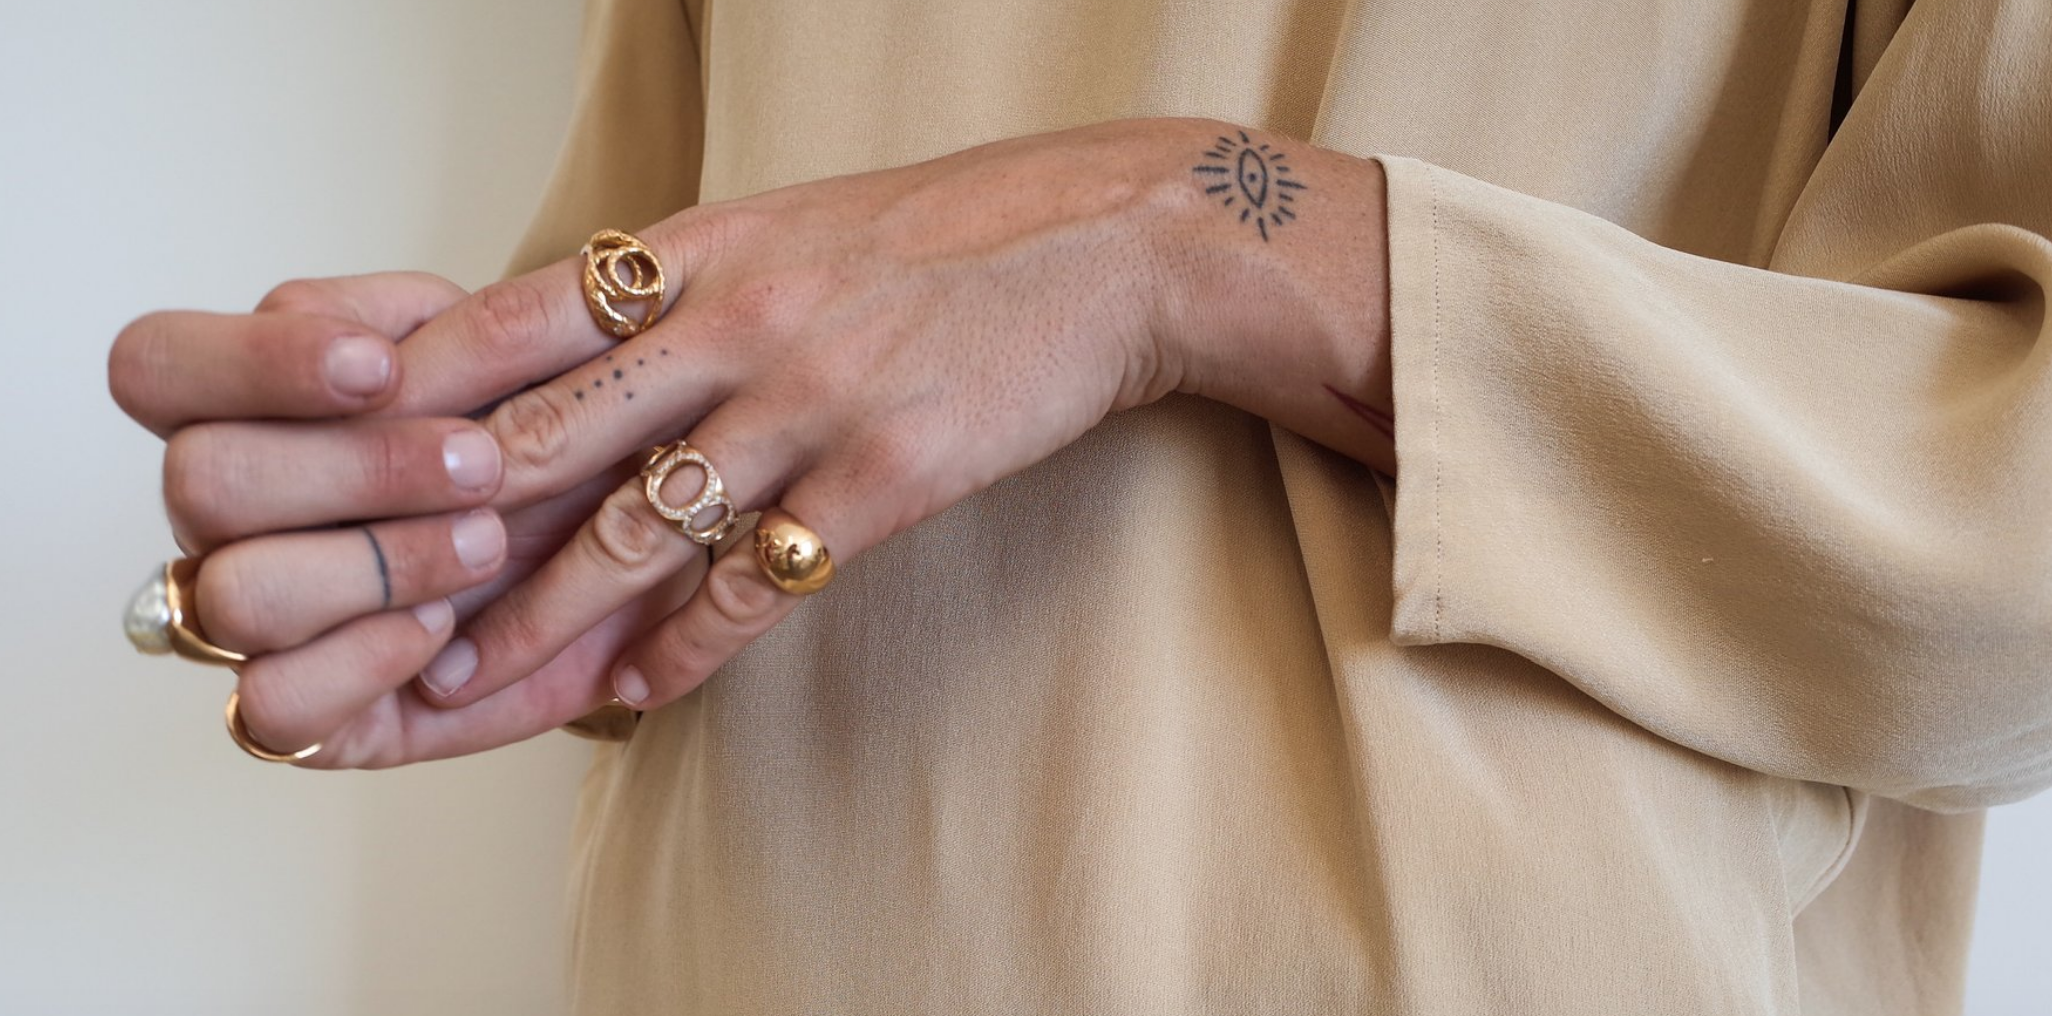 Jessica Seaton  has been my go to ring chick since I discovered custom jewelry. She has such an aura about her and I love how it feels like a slice of her is set in every piece she creates.